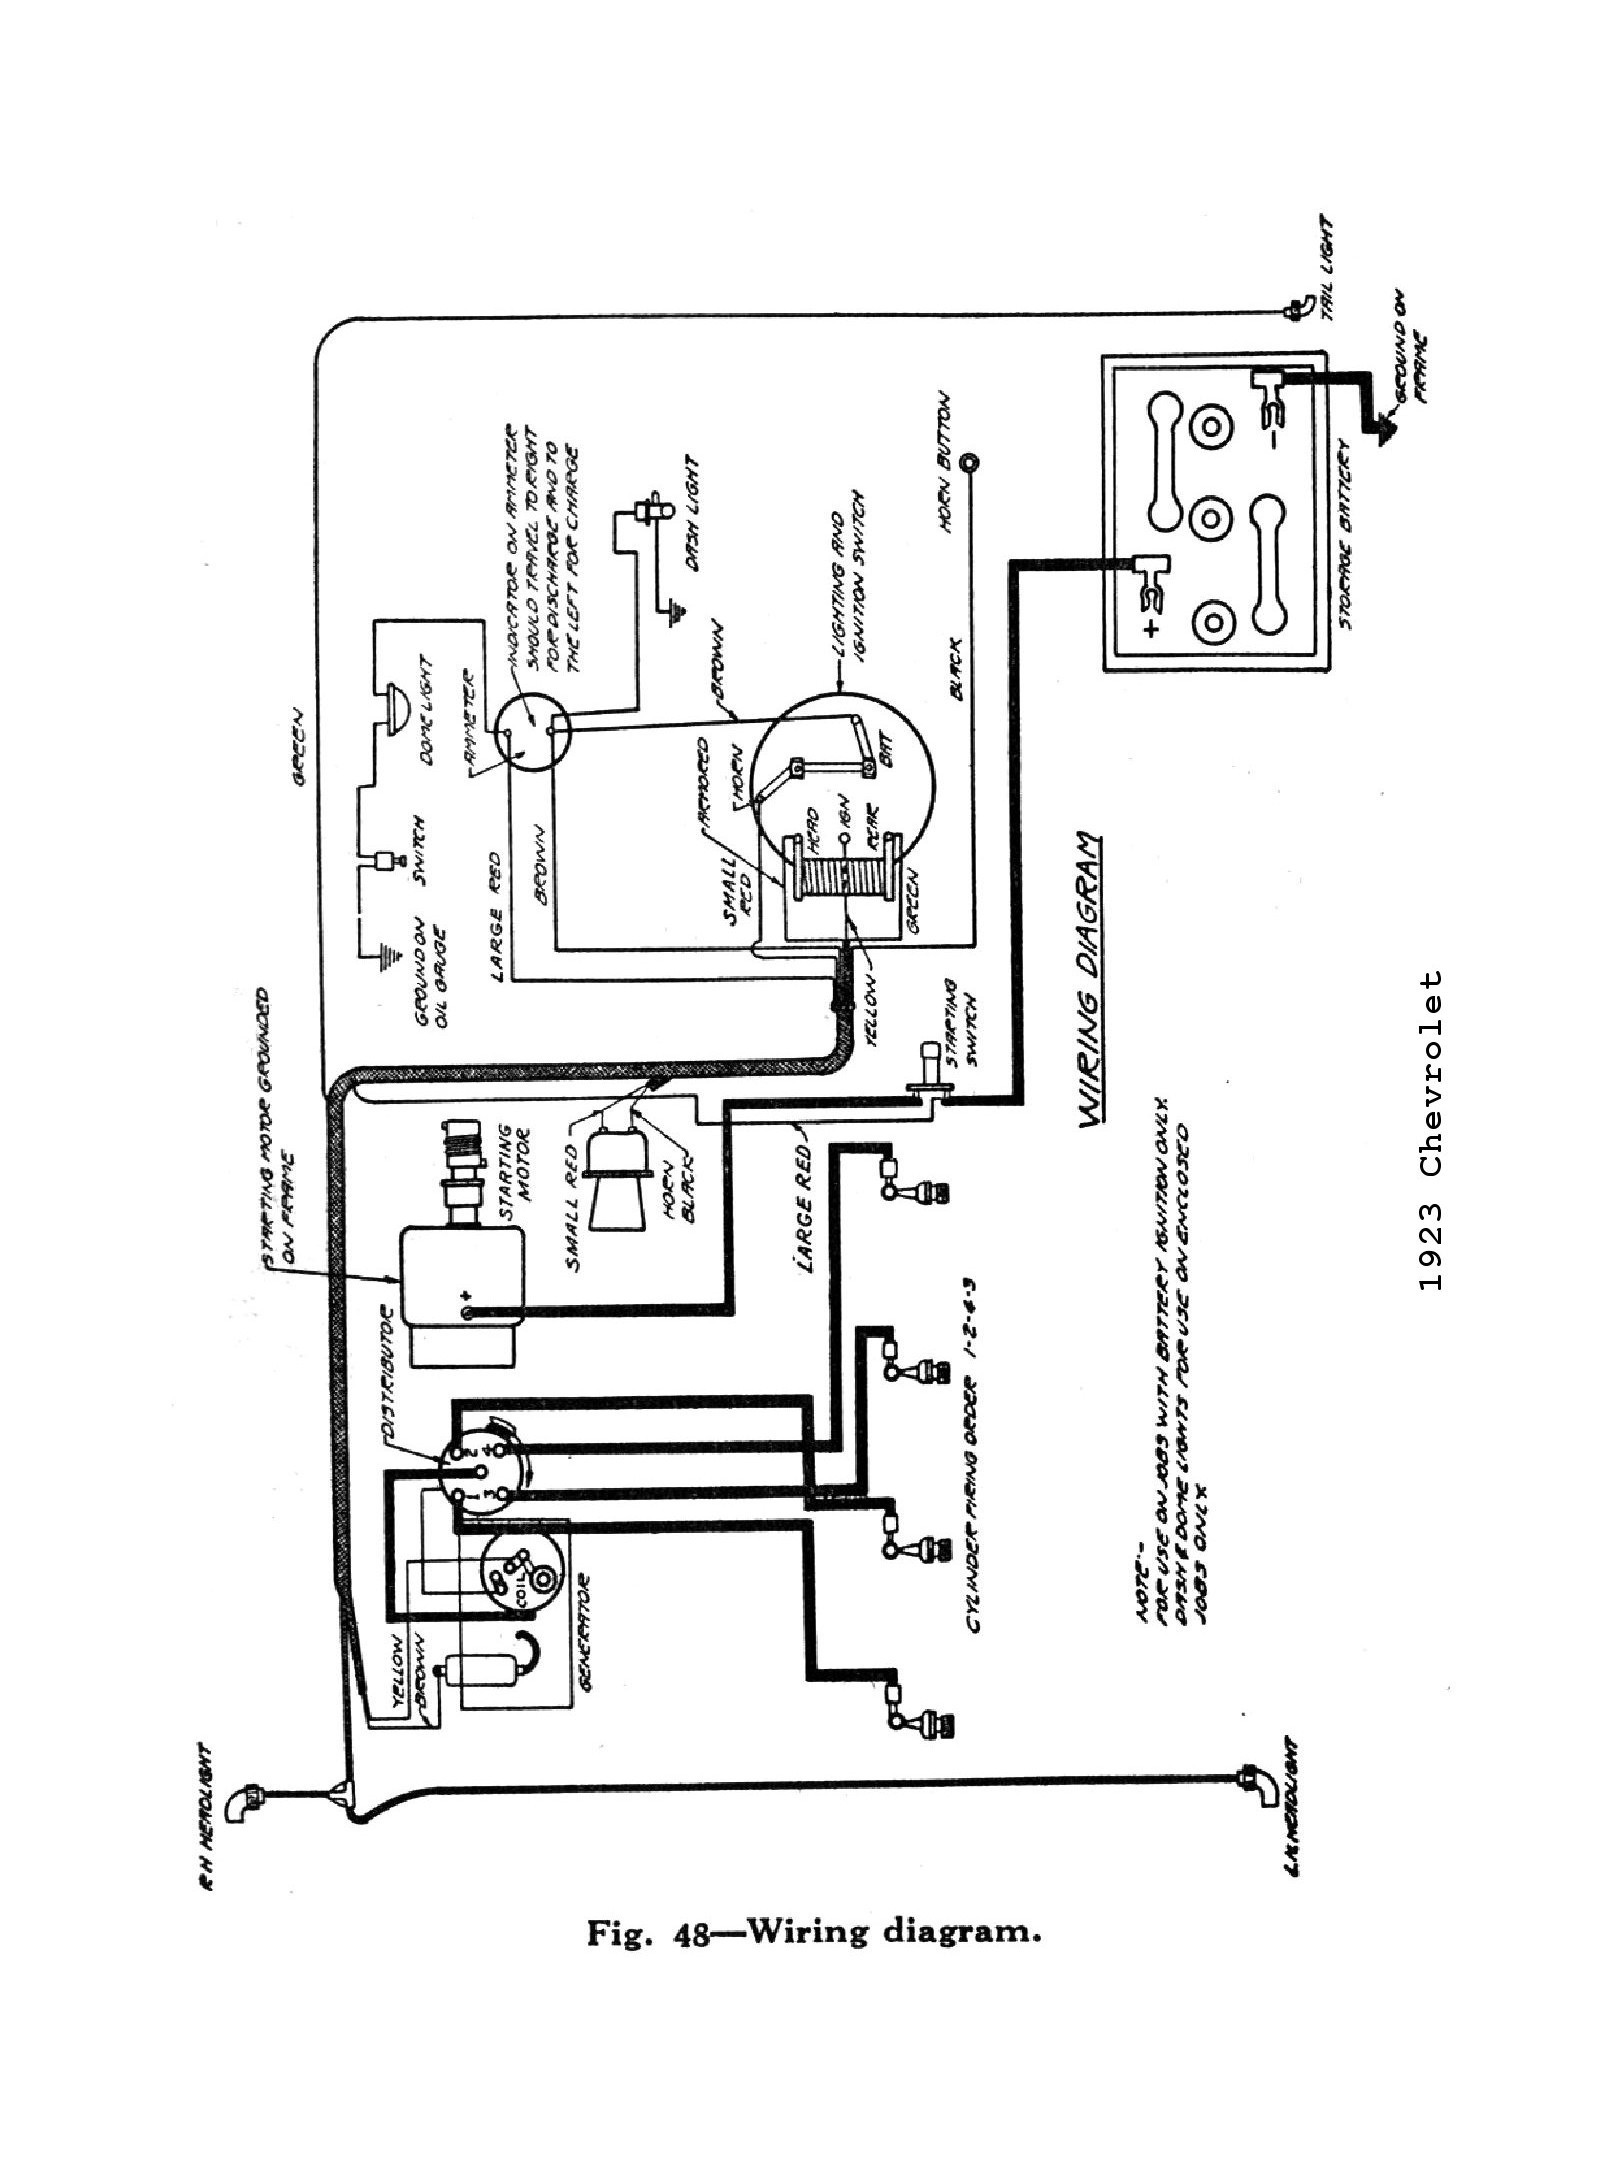 semi truck engine diagram u2022 free wiring diagrams rh pcpersia org  semi truck engine compartment diagram